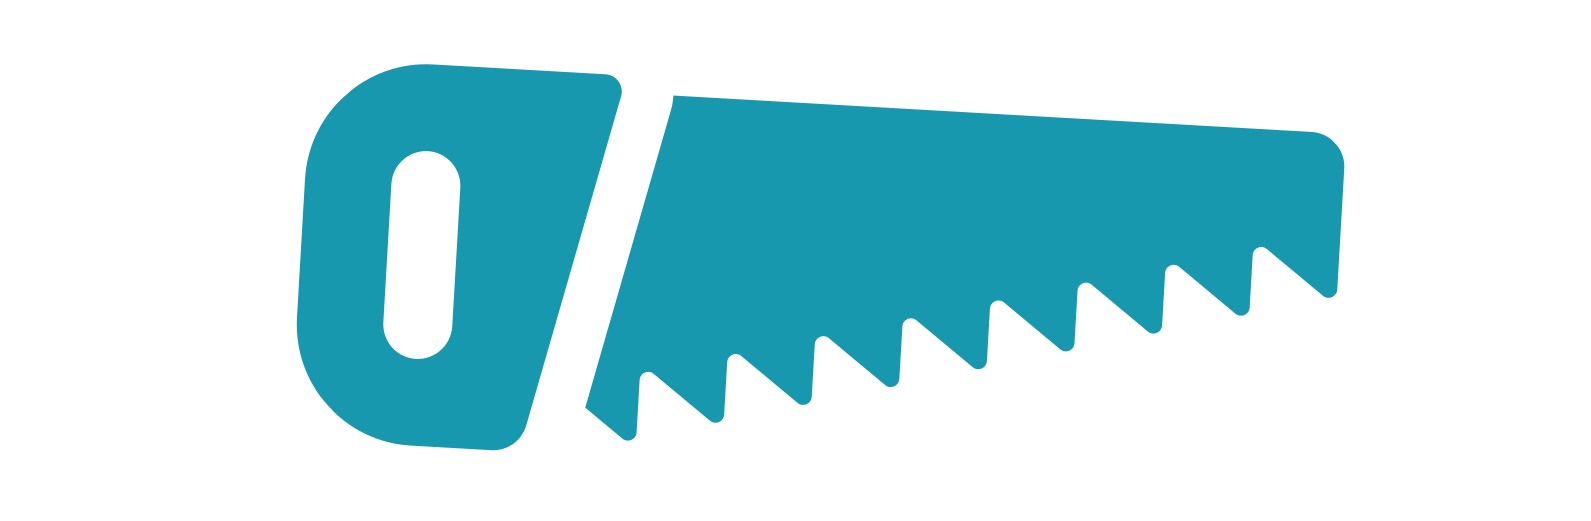 ToolDivider_Saw.png